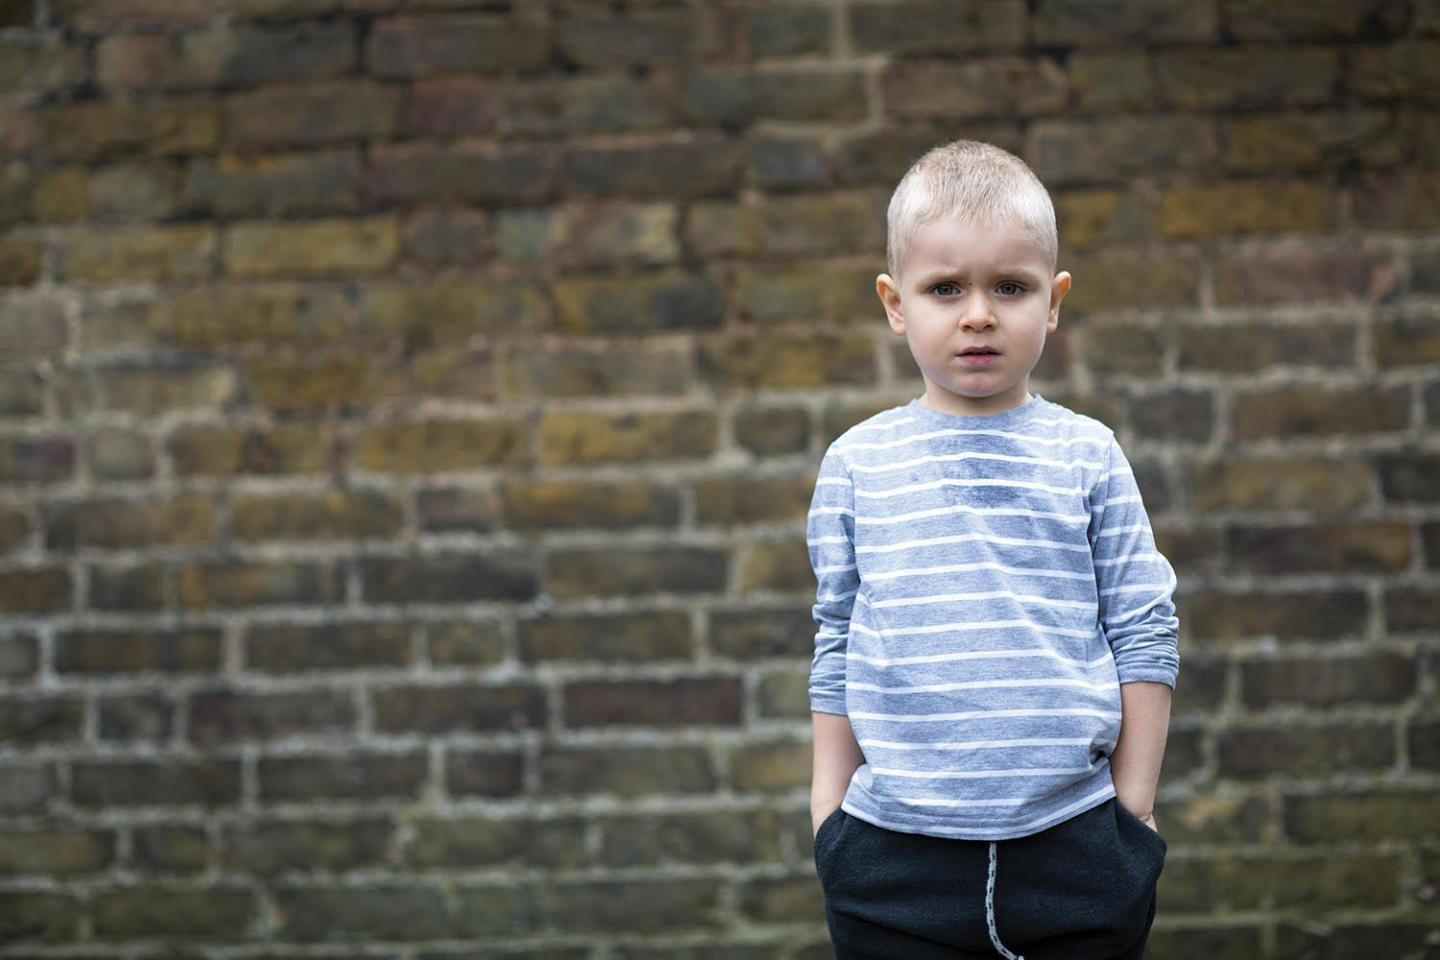 Young boy in front of a brick wall